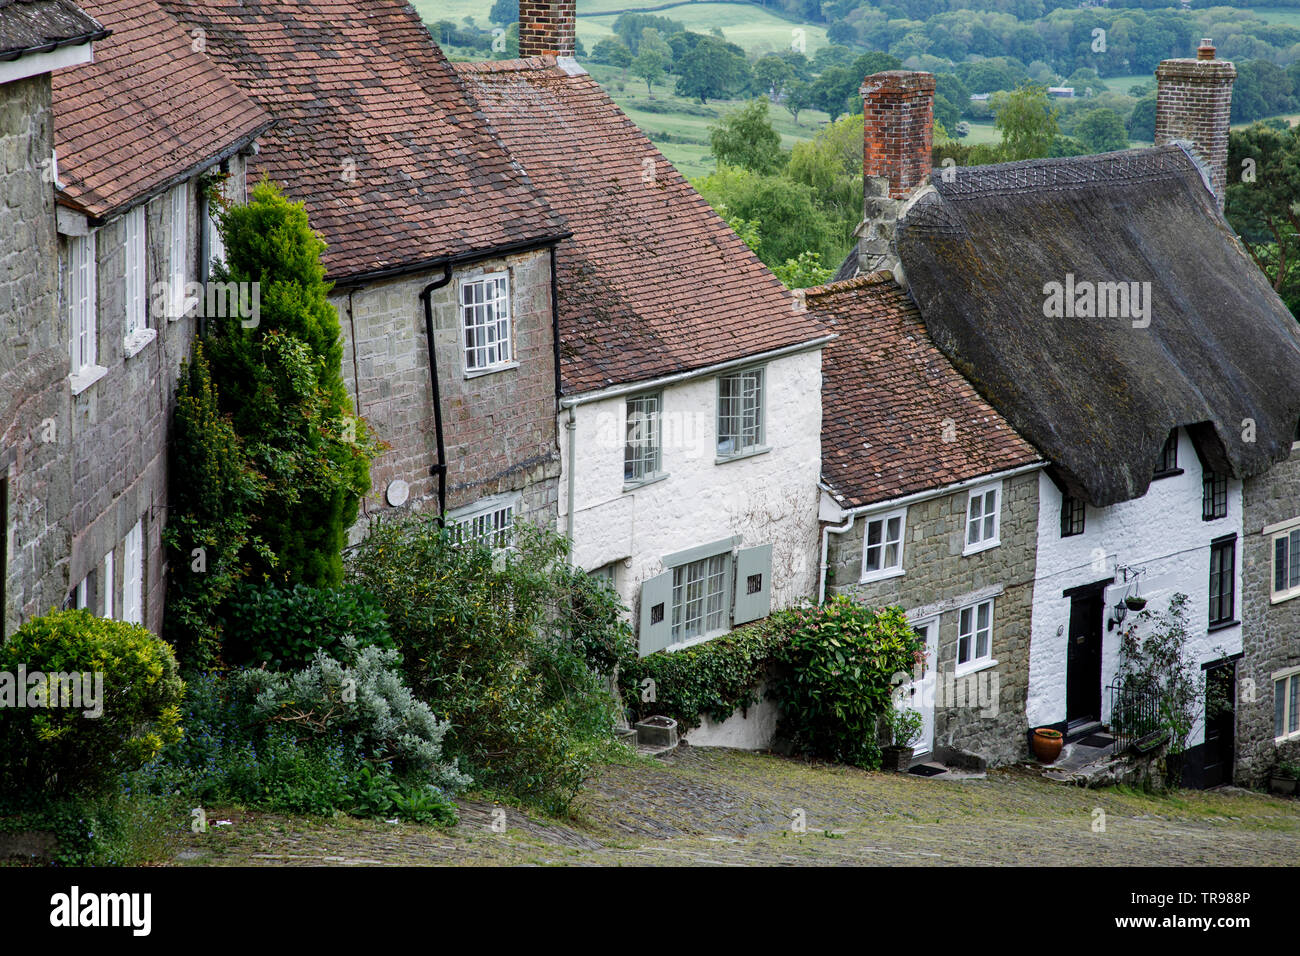 SHAFTESBURY, UK - MAY 19th, 2019: Gold Hill is a steep cobbled street in the town of Shaftesbury in the English county of Dorset. It is famous for its - Stock Image